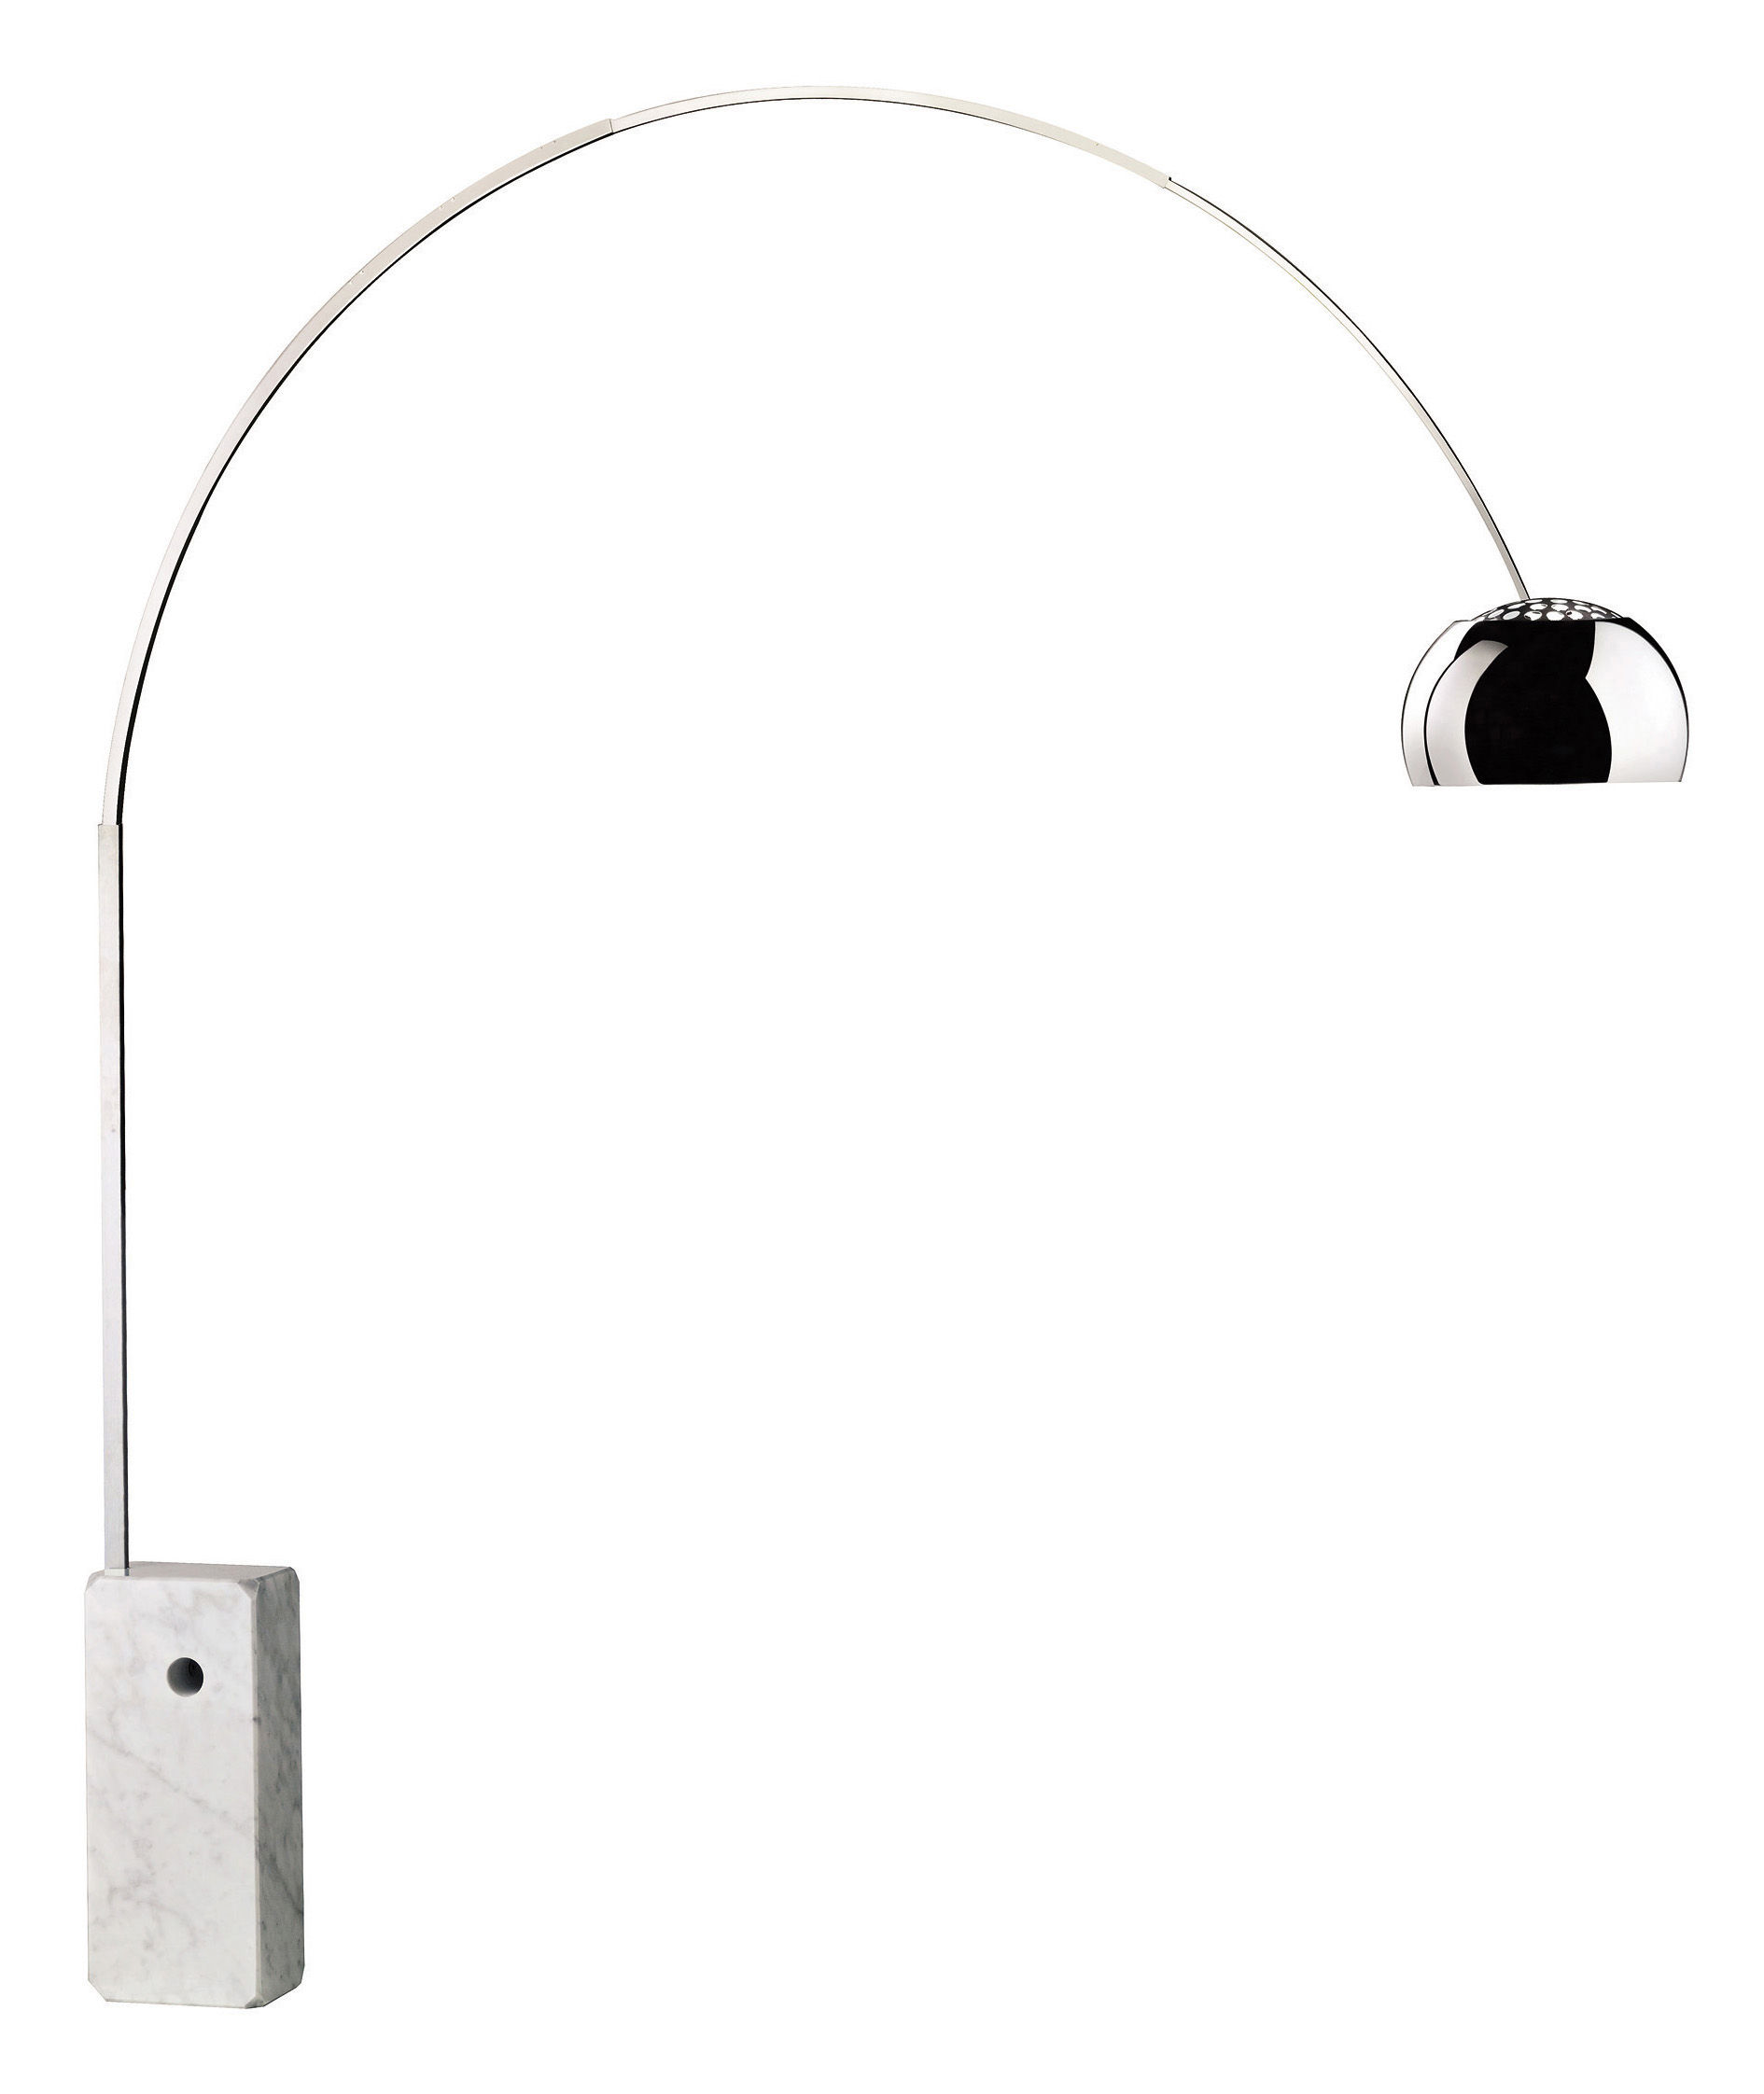 Lighting - Floor lamps - Arco Floor lamp - H 240 cm - LED by Flos -  - Marble, Polished aluminium, Stainless steel